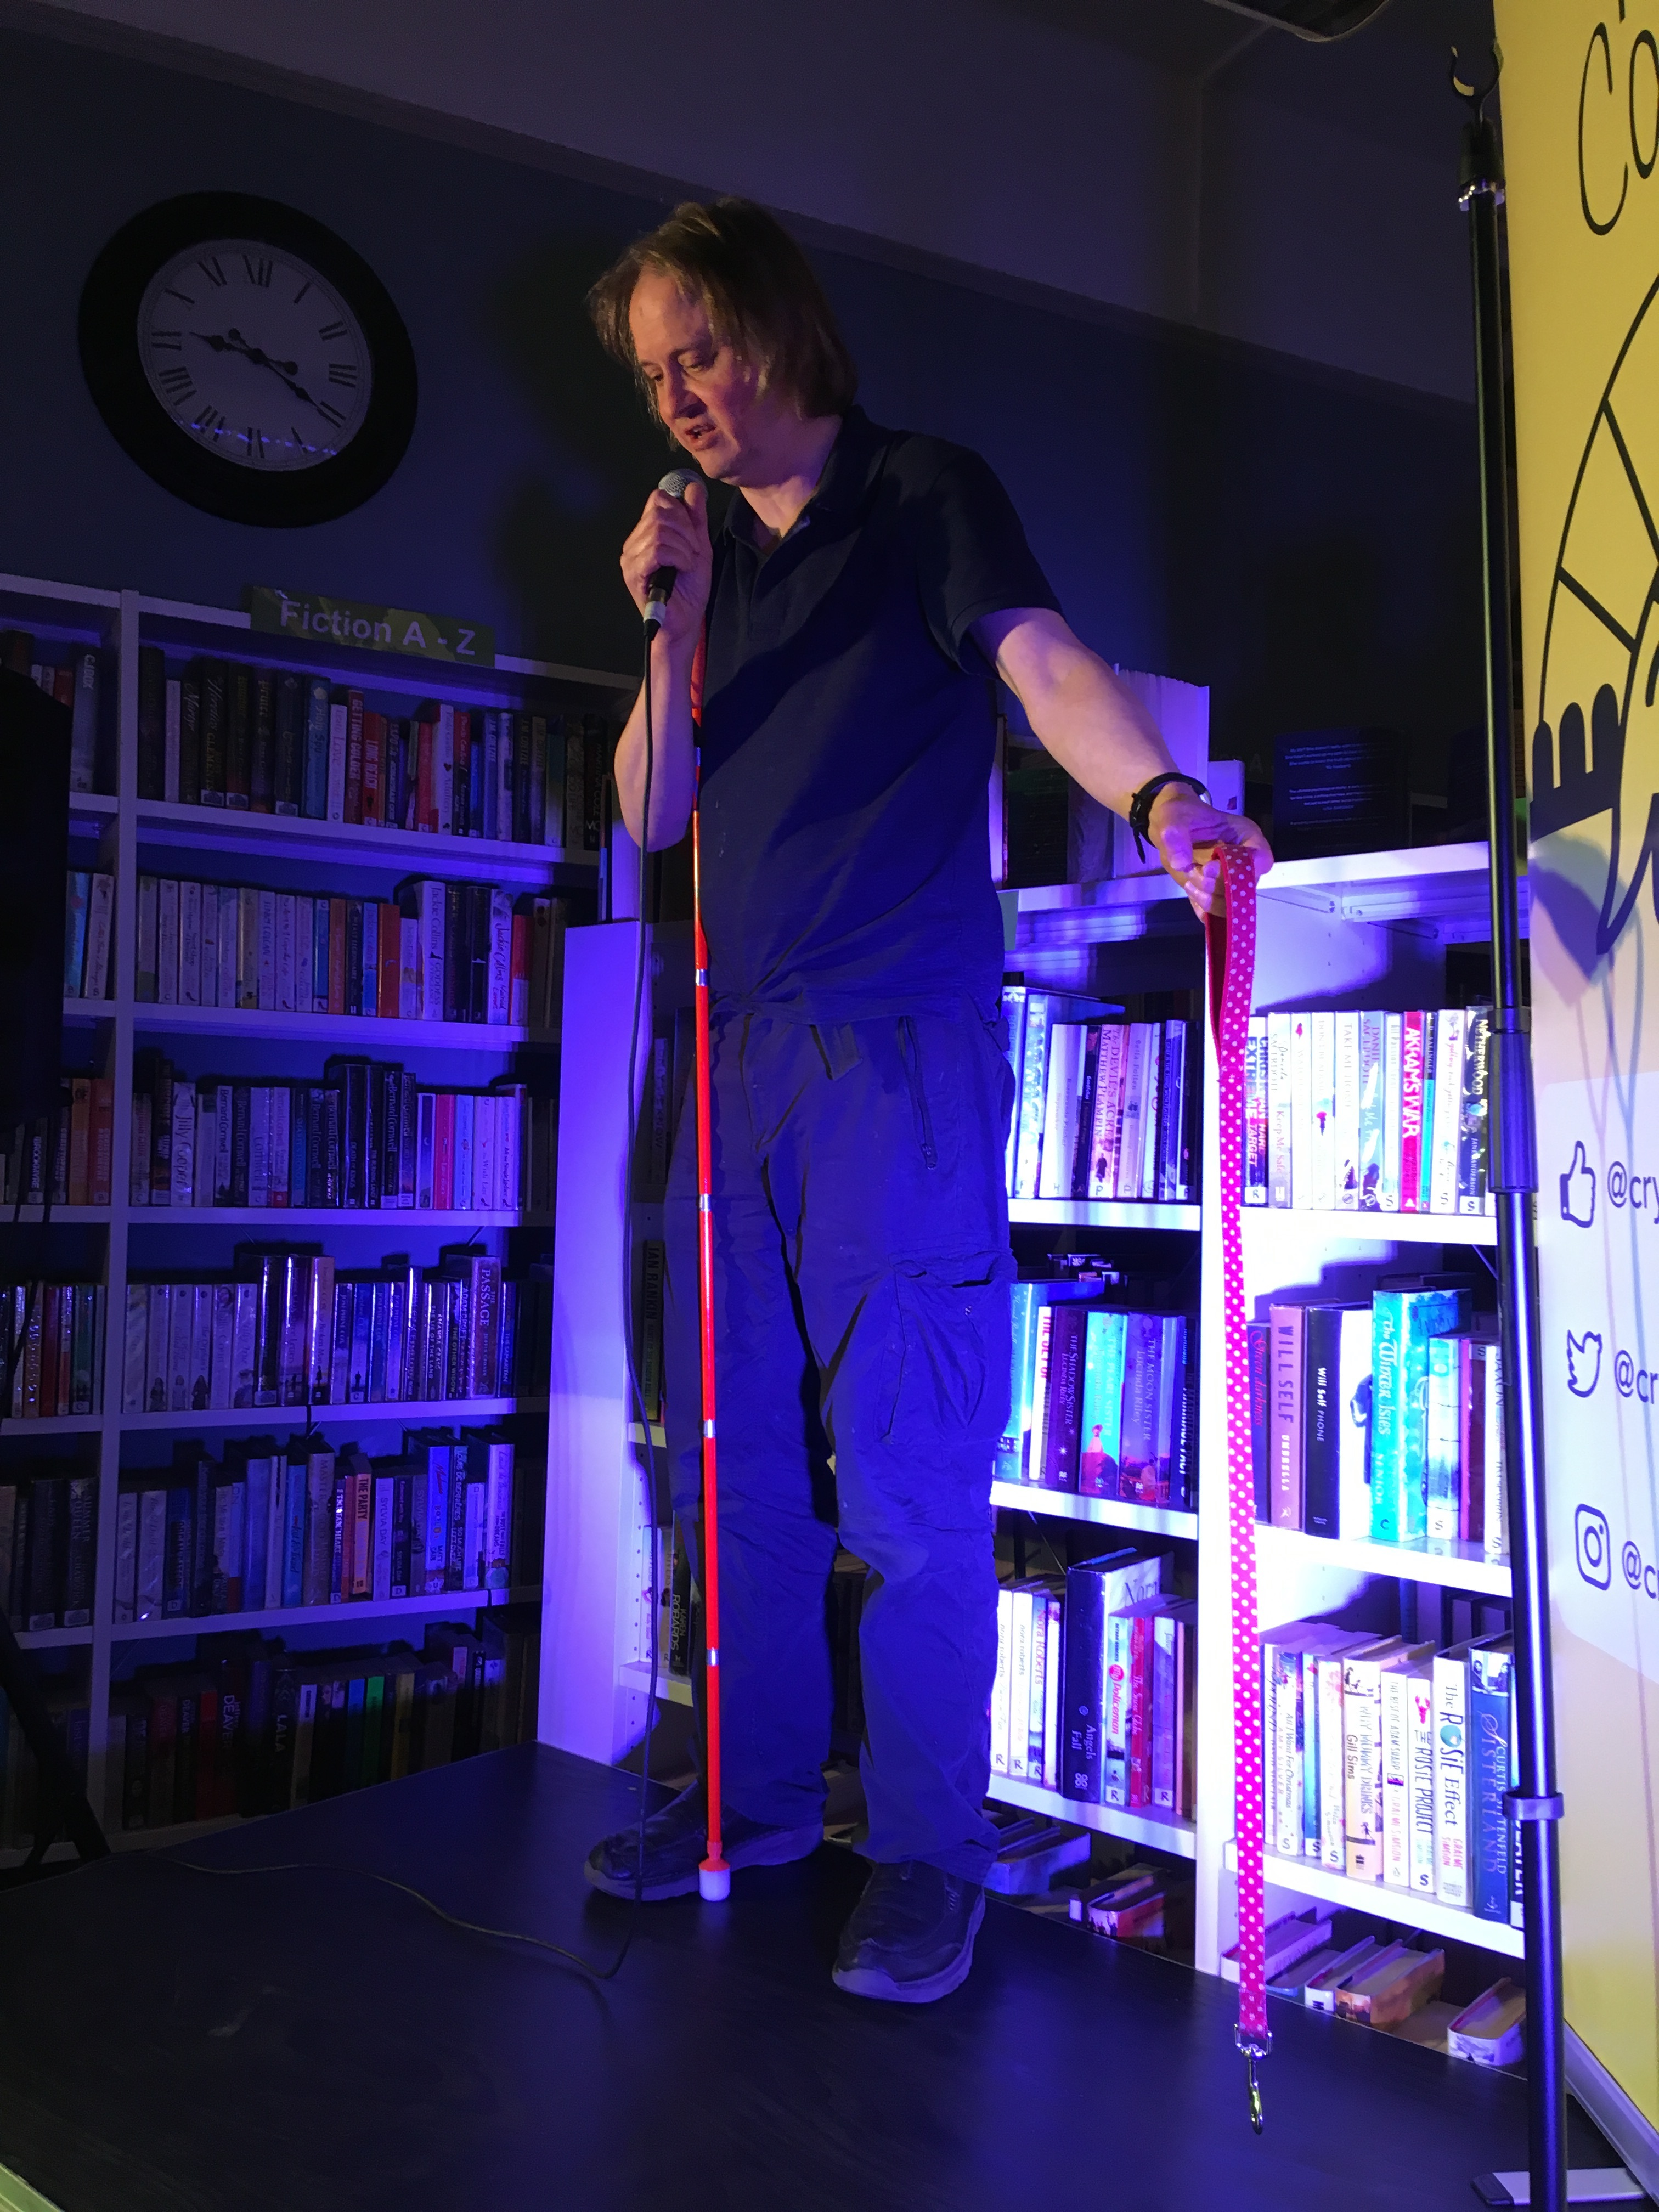 Picture of Stephen Portlock at one of his gigs